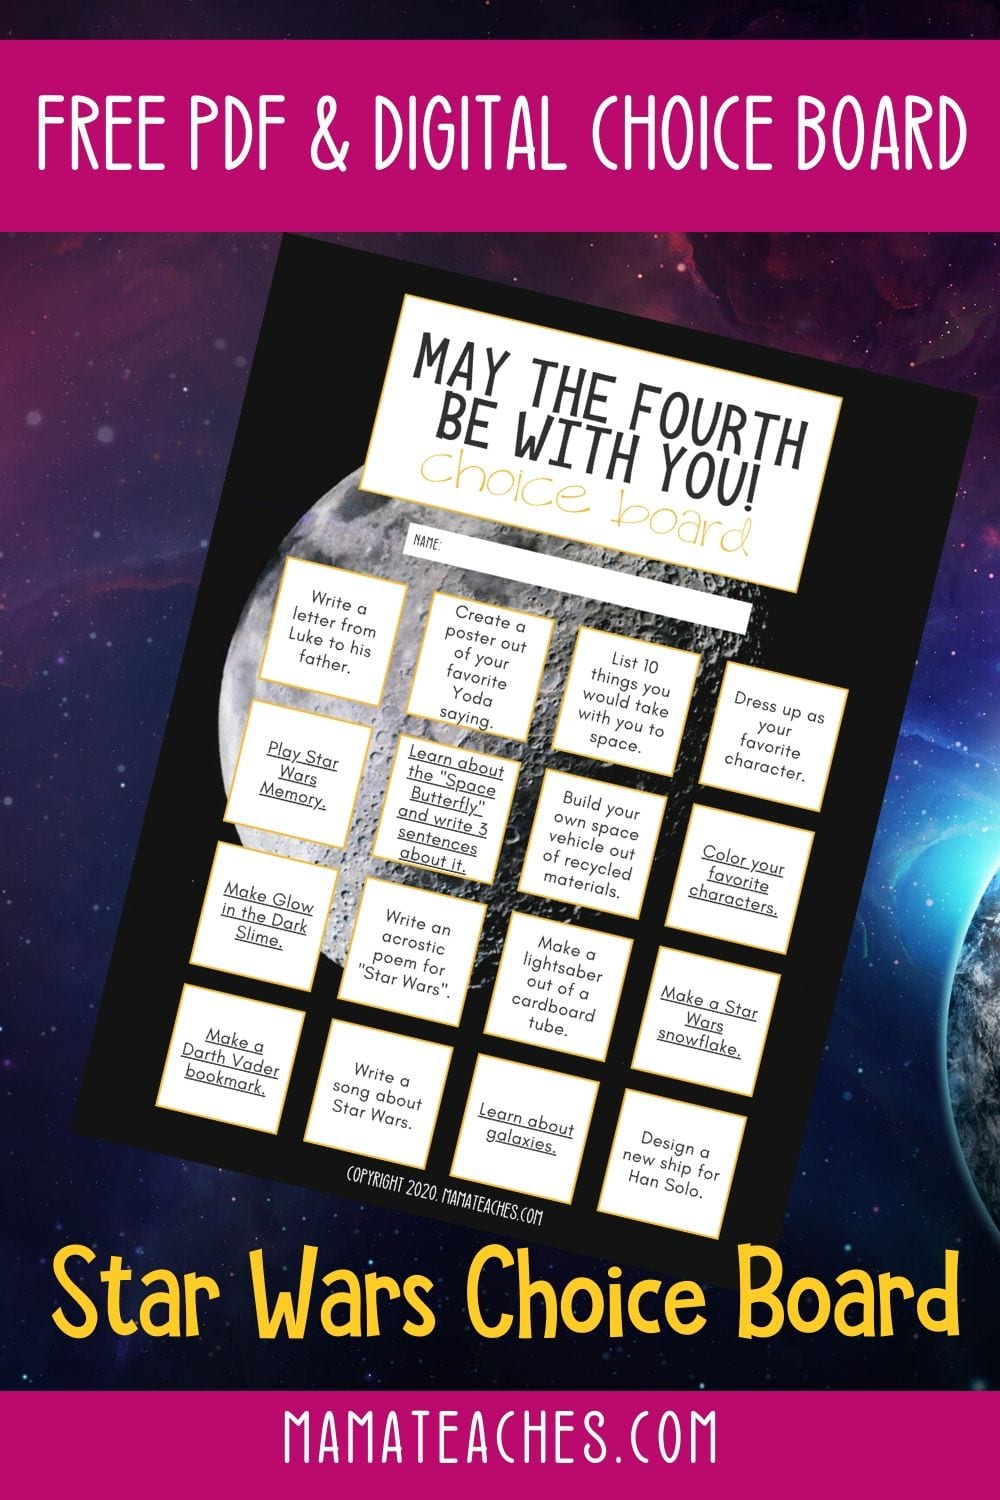 Free PDF and Digital Google Slide Star Wars Choice Board for May 4th Star Wars Day - May the 4th Be With You - MamaTeaches.com